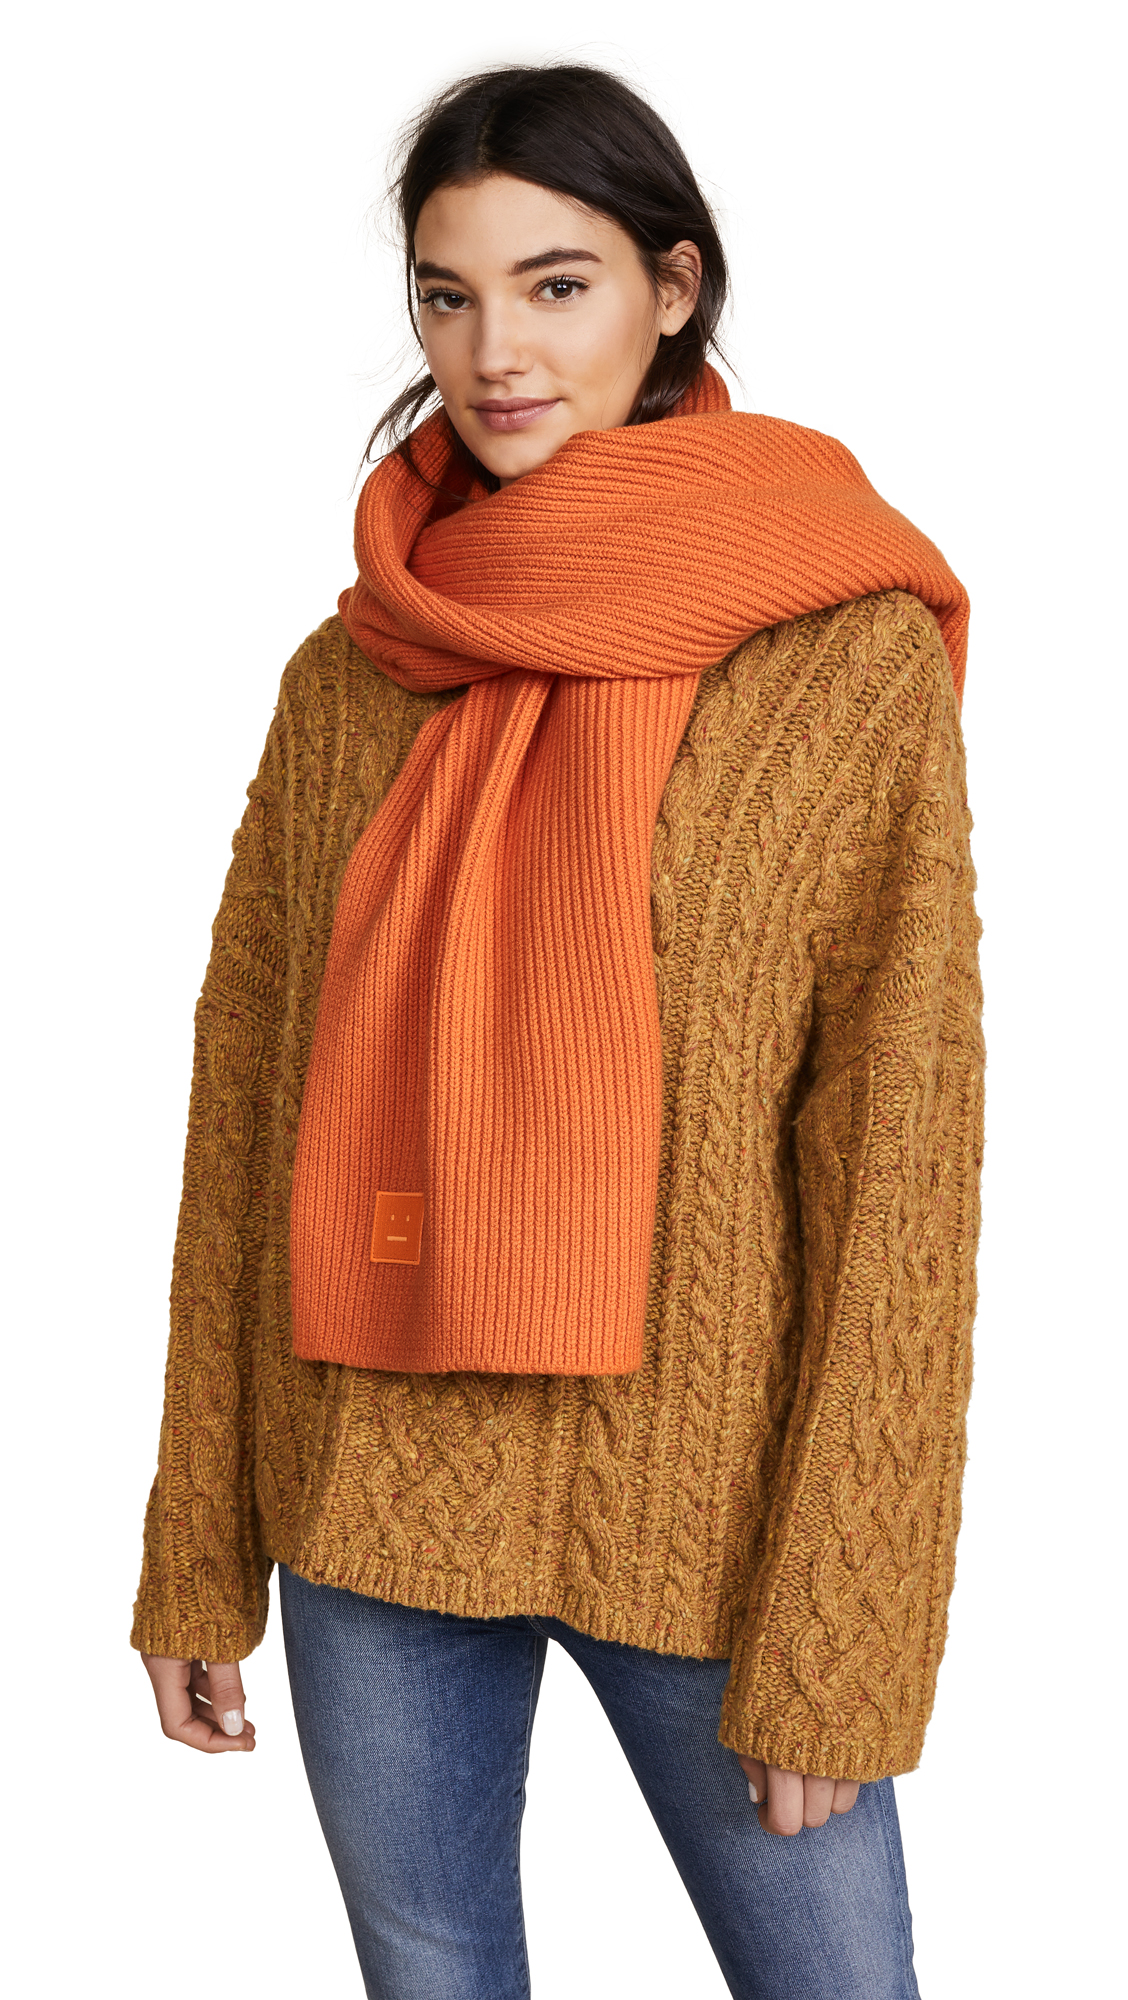 Acne Studios Bansy S Face Scarf - Geranium Orange